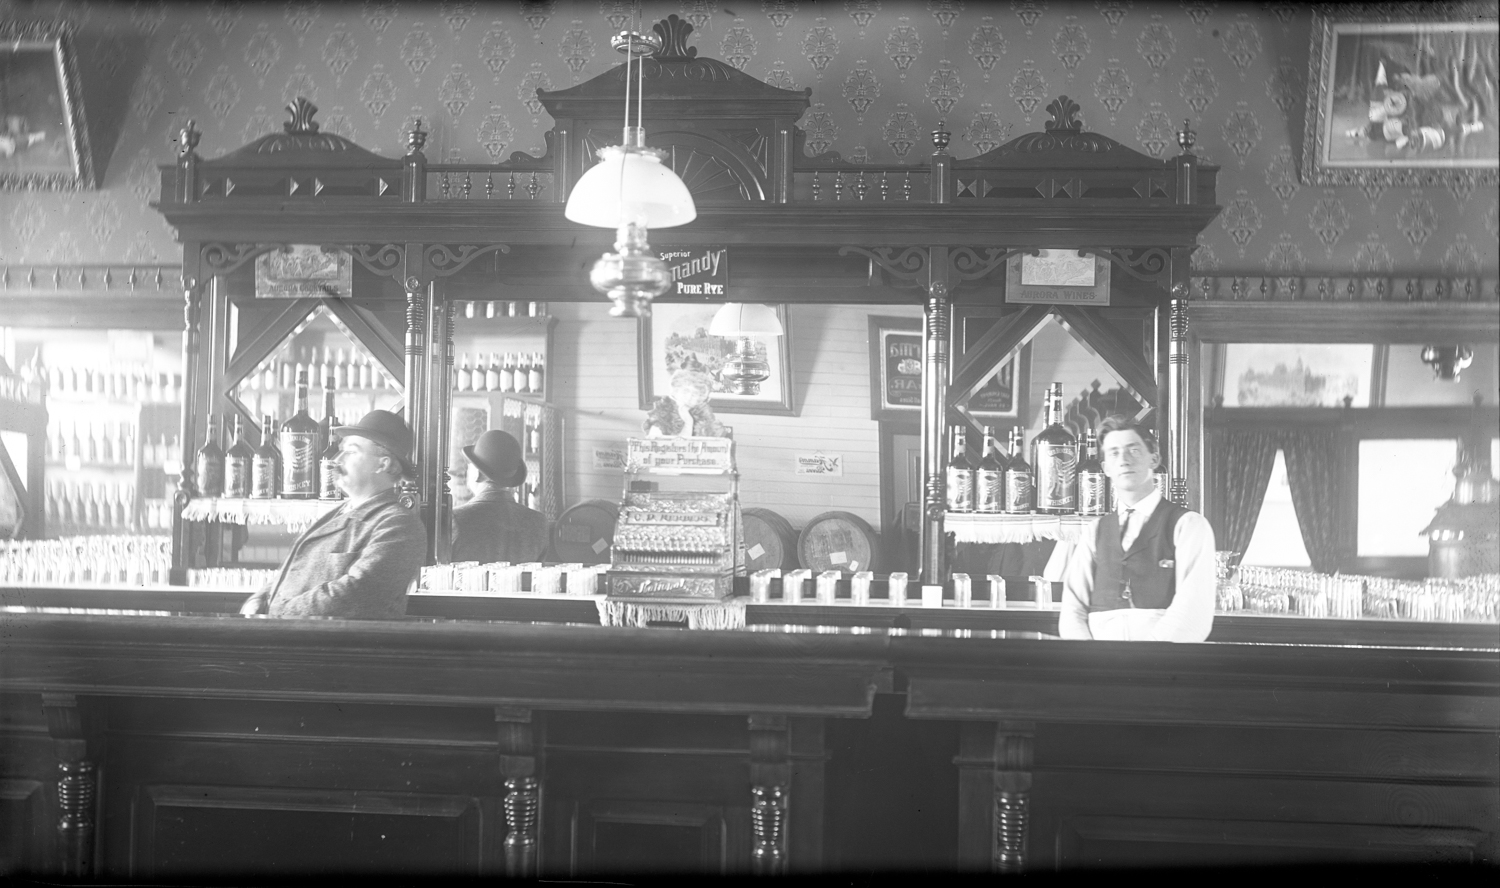 C.D. Herbert's Saloon in Moorhead, Minnesota, ca. 1900–1915 // Photo courtesy Historical and Cultural Society of Clay County